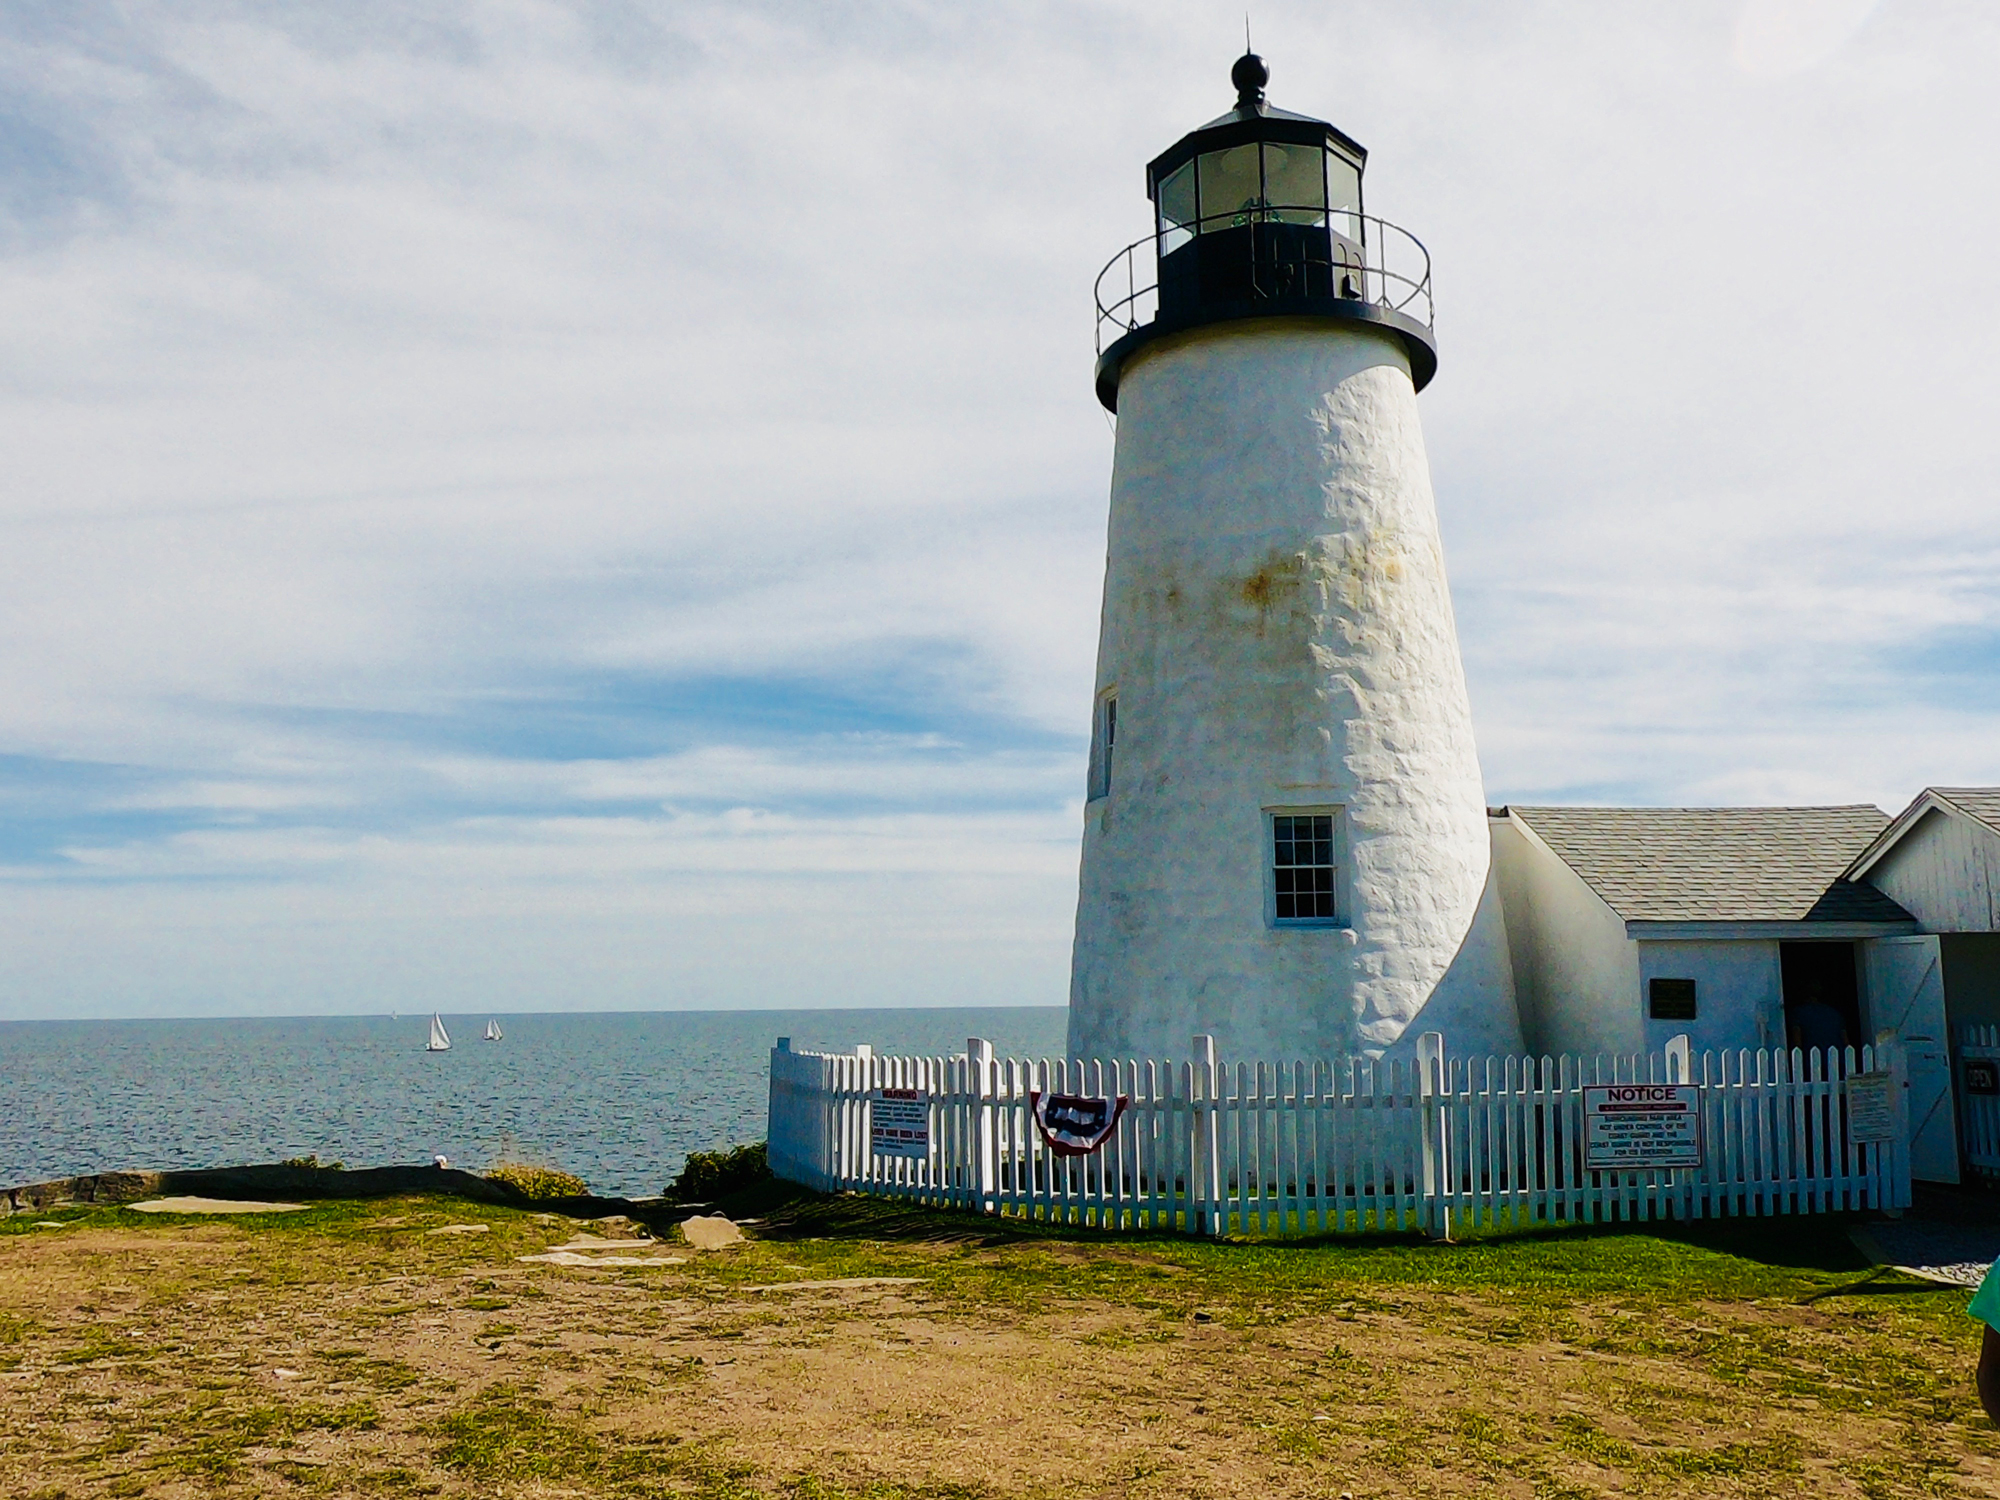 Exterior of Pemaquid Point Lighthouse with white picket fence overlooking bay with sailboats in Maine.